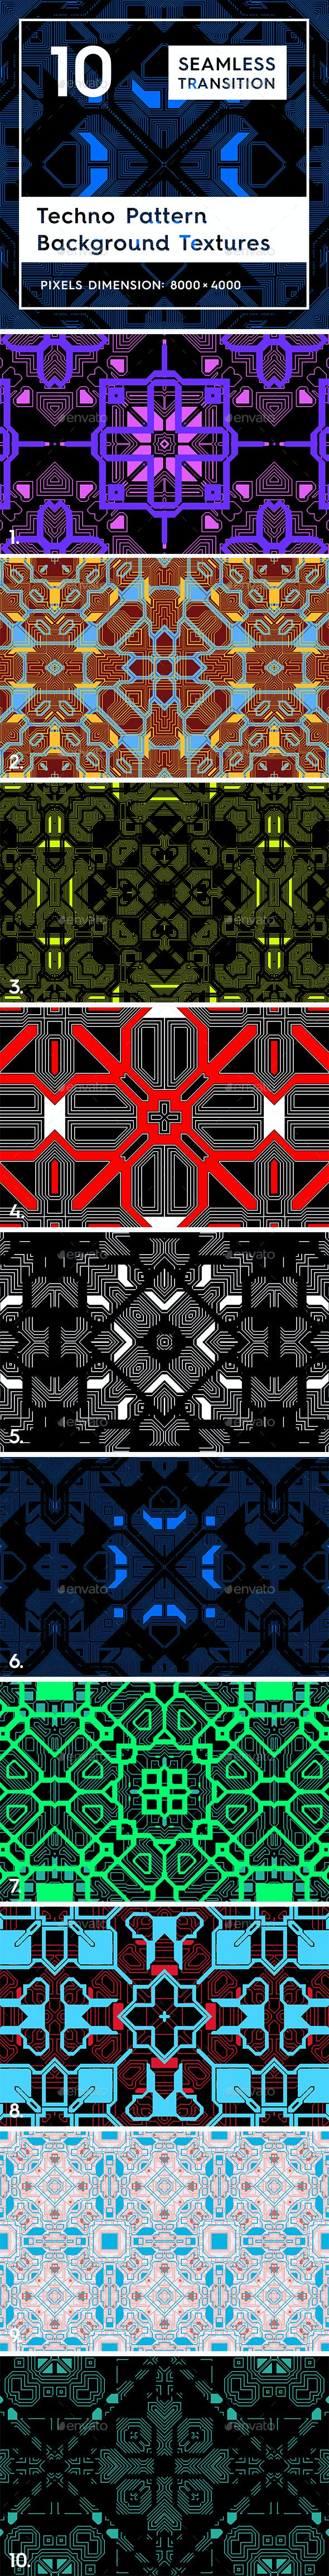 10 Techno Pattern Backgrounds - 3DOcean Item for Sale